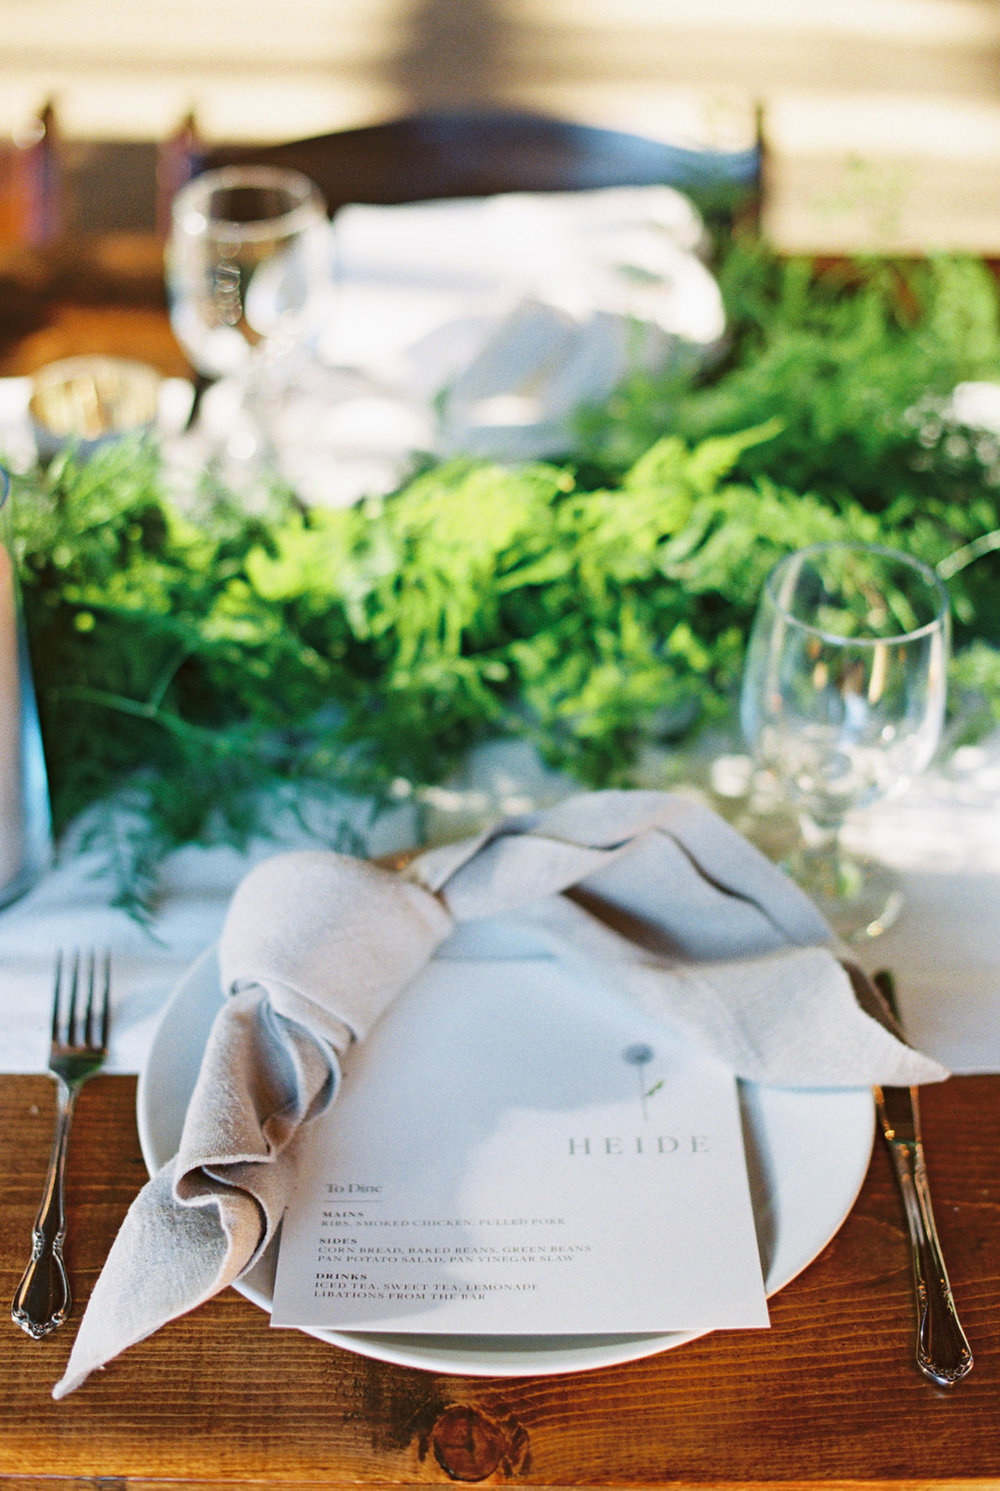 Custom menu place cards for a spring farm wedding, combining classic style with the natural environment.